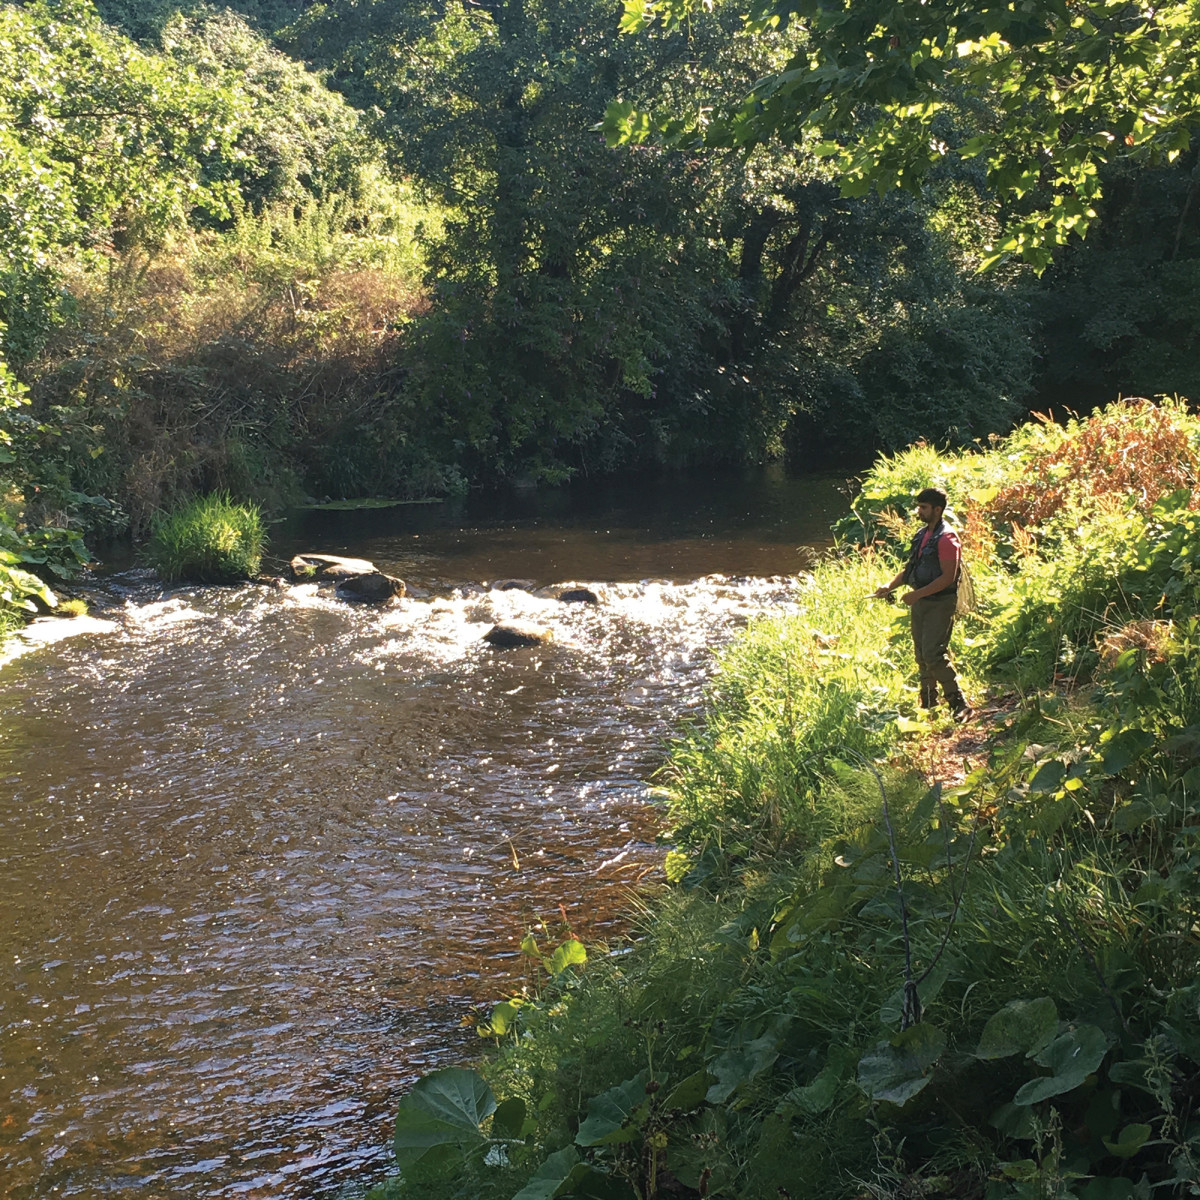 Only members of the Dodder Anglers' Club can fish the river.